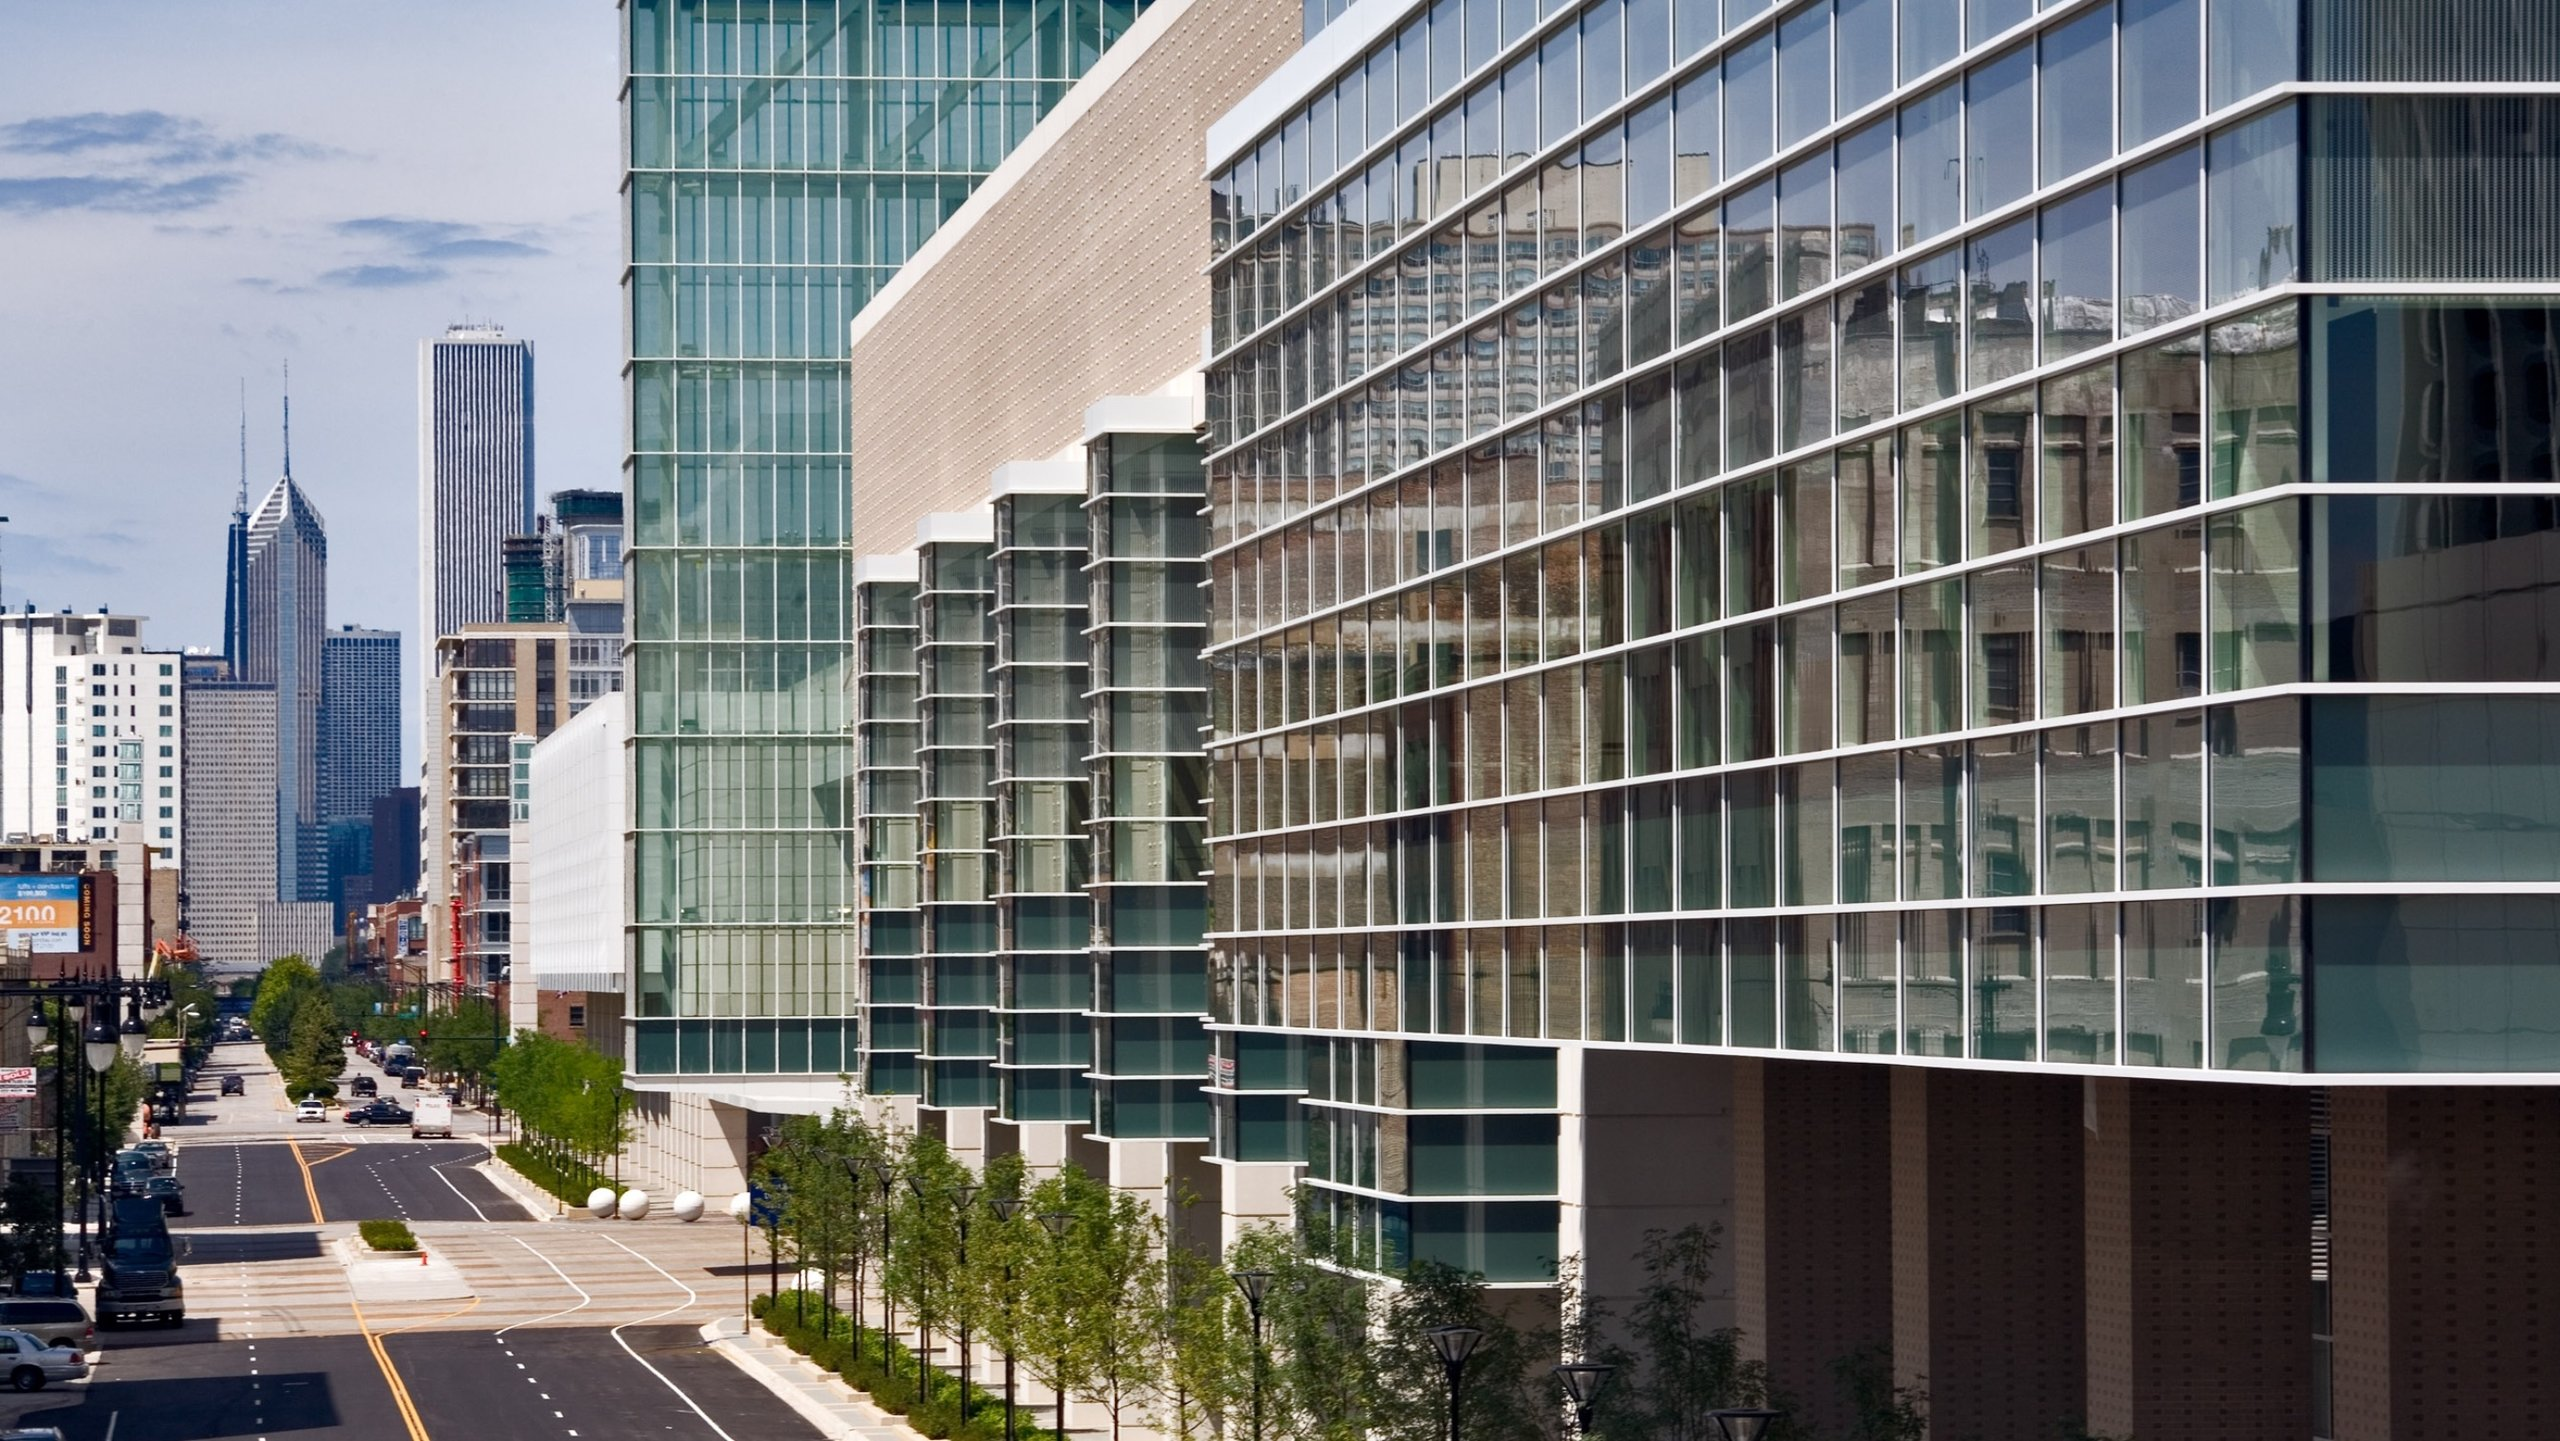 Attend an event at the United States' largest convention center, which features hyper-modern facilities and huge exhibition spaces connected by promenades and sky bridges.